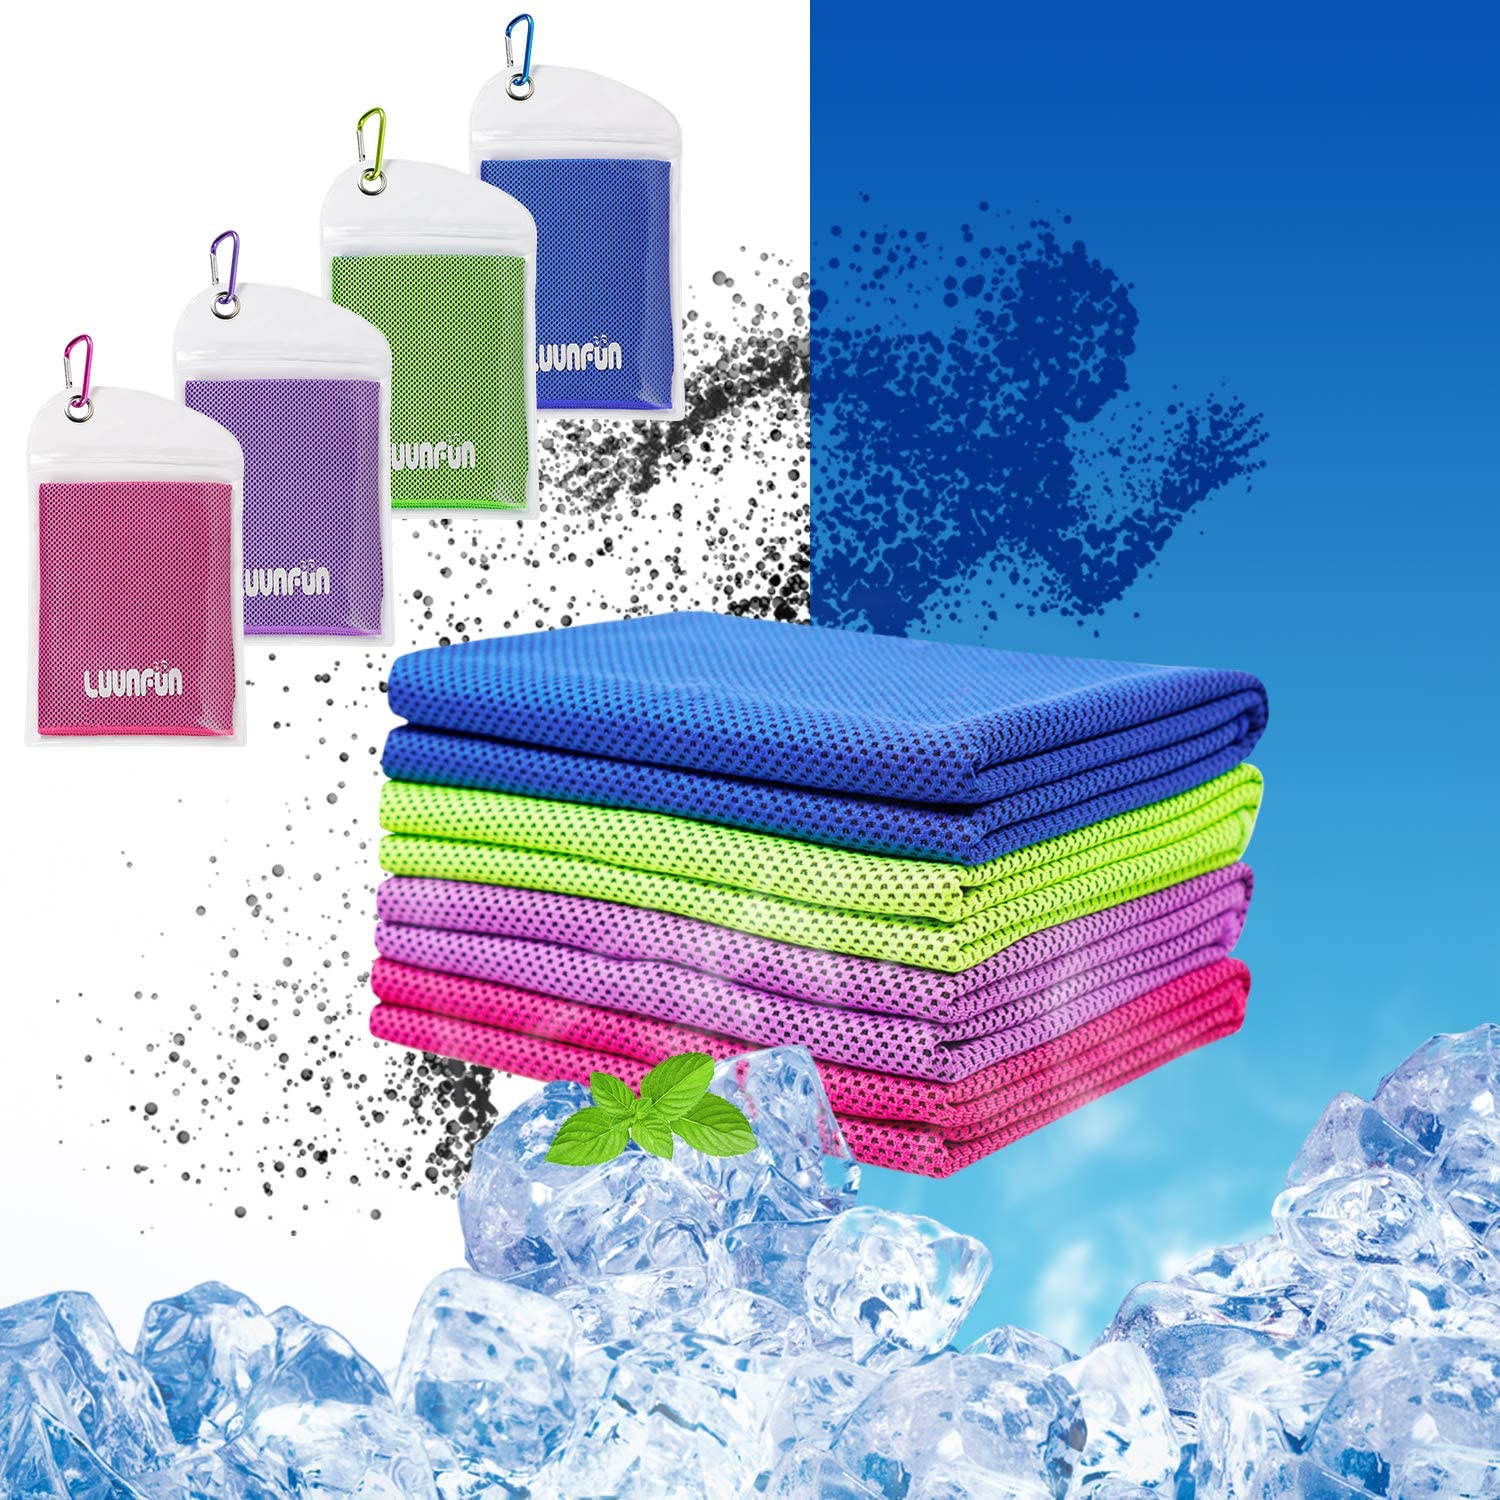 LUVNFUN 4 Pack Cooling Towels for Neck (40x12Inch) Cool Neck Warps for Summer Heat -Cold Chilly Cloth for Instant Relief- Ice Towel Ideal for Sports,Running,Gym Workout,Fitness,Yoga -UPF 50